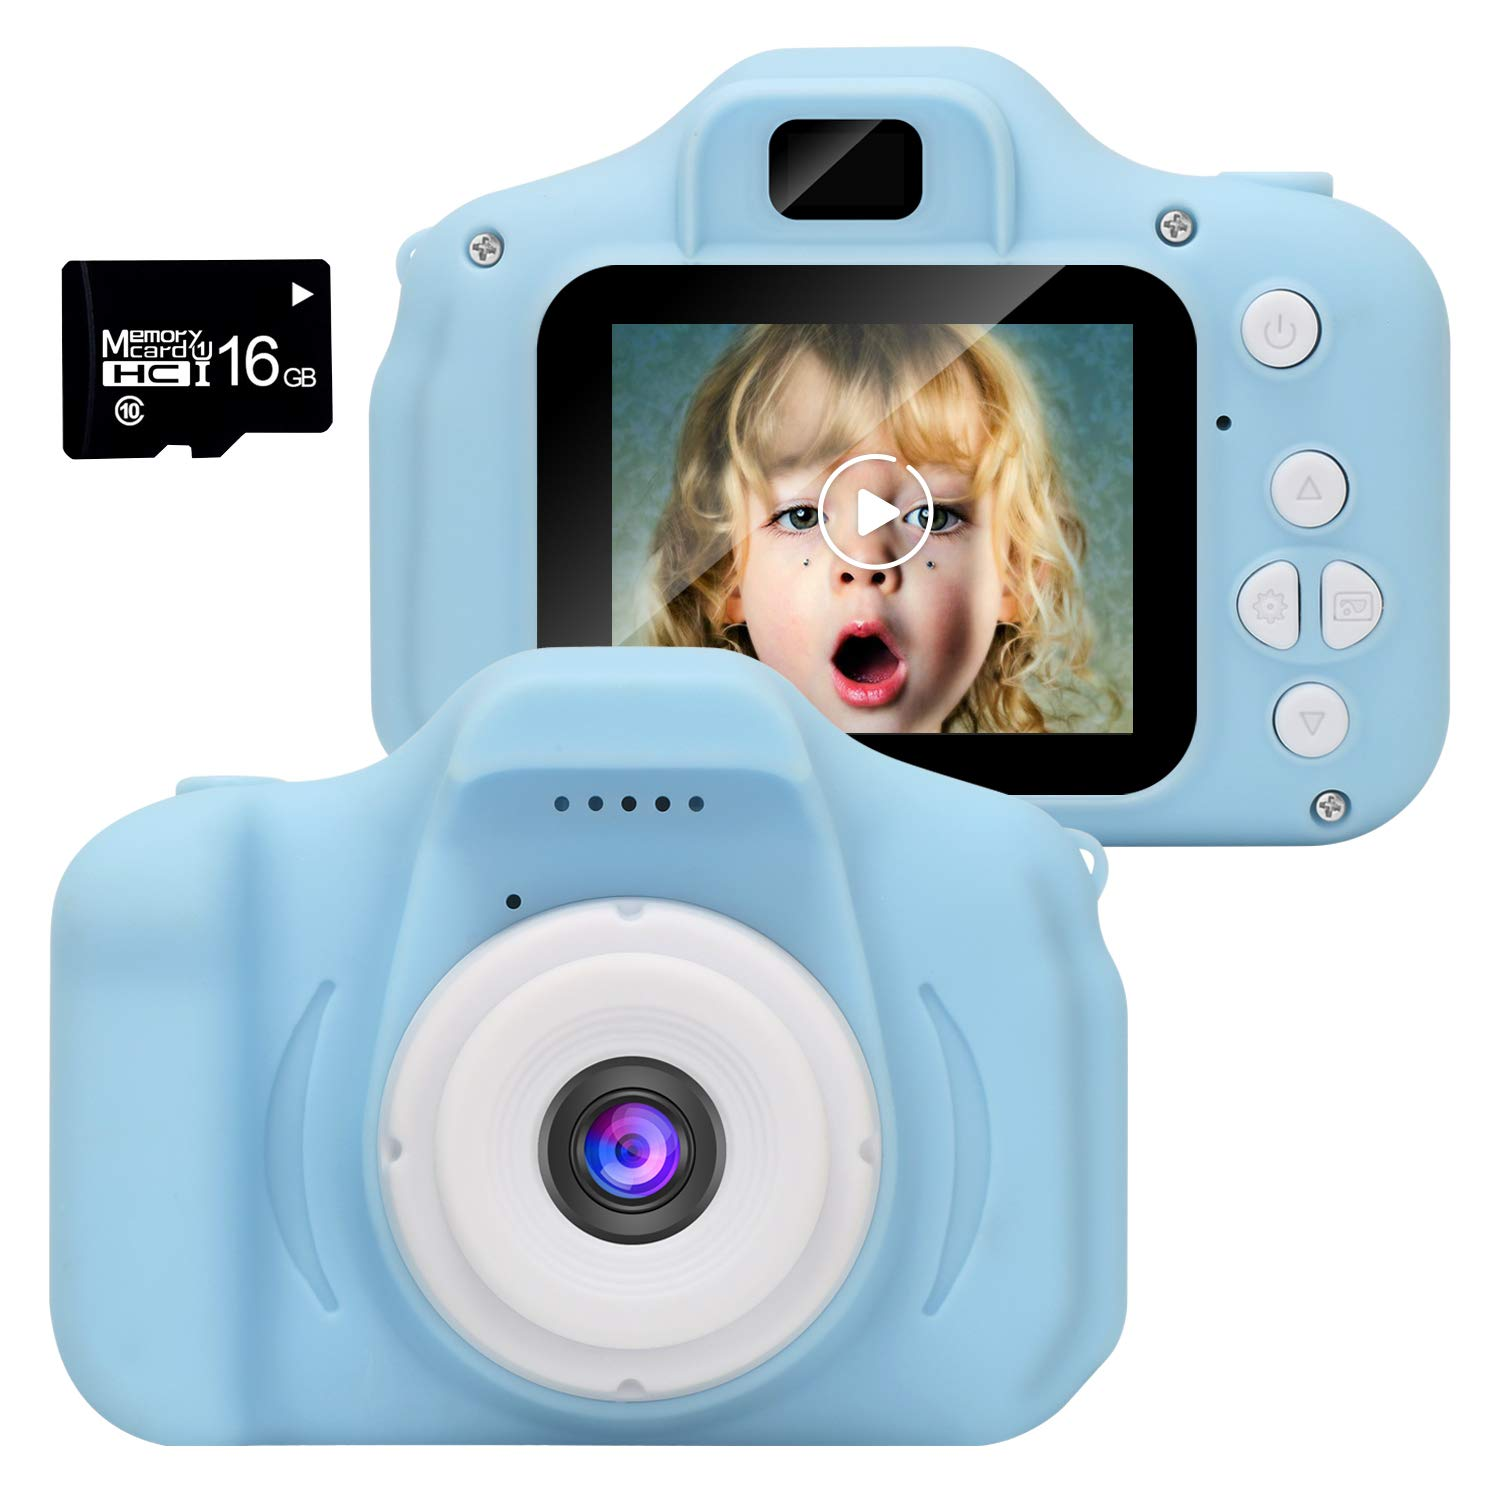 WUBUMIM Kids Digital Video Camera Best Birthday Gifts for Girls Age 3-7 , Rechargeable Kids Camera Shockproof 8MP HD Video Cameras Great Gift Mini Child Camcorder (Pink) (Blue)